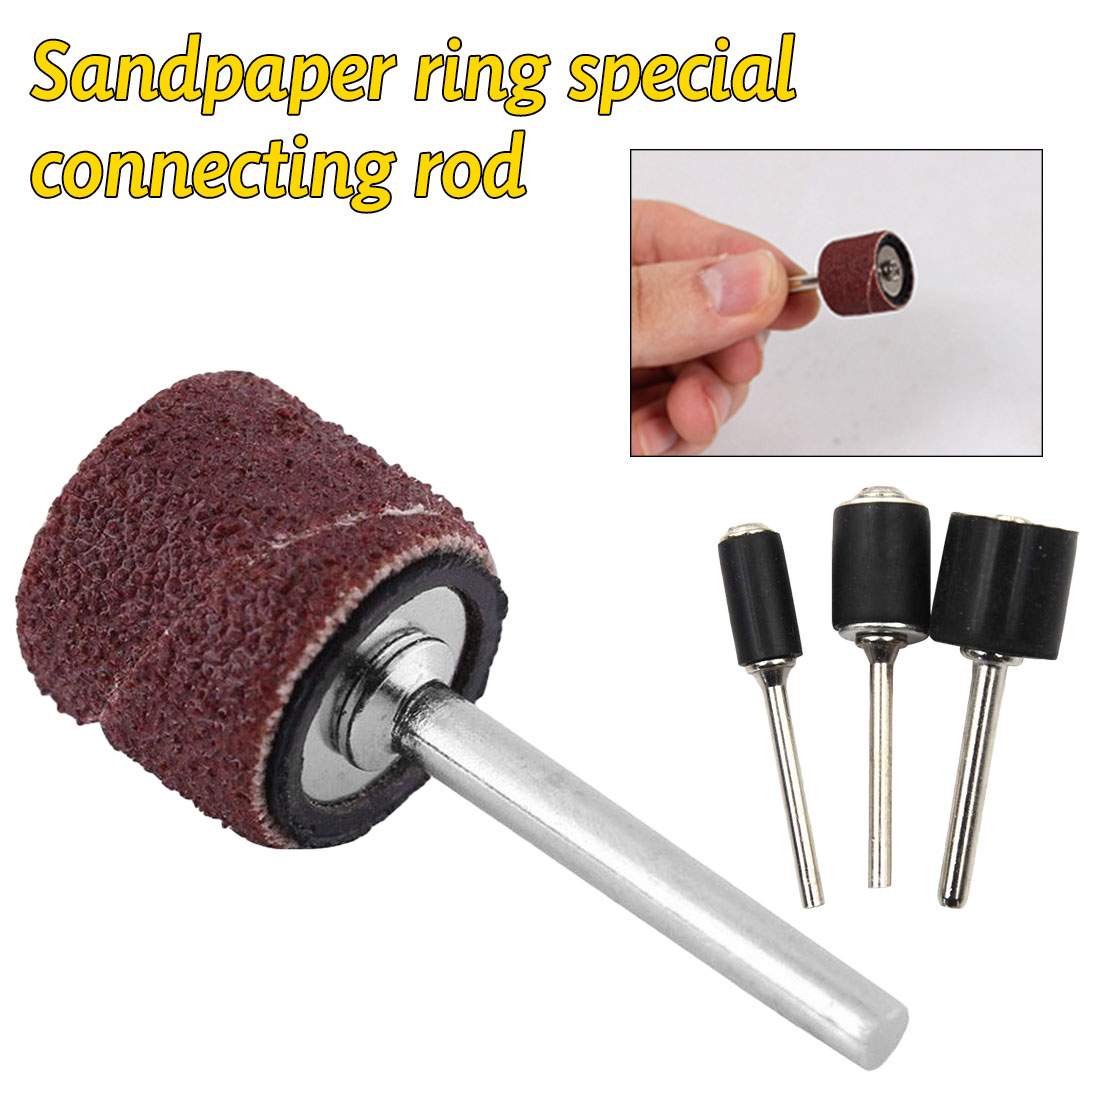 1/8 1/4 Inch Grinder Drum Sanding Sandpaper Circle Kit Polishing Nails For  Rubber Drum Mandrel Grinder Accessories Sandpaper